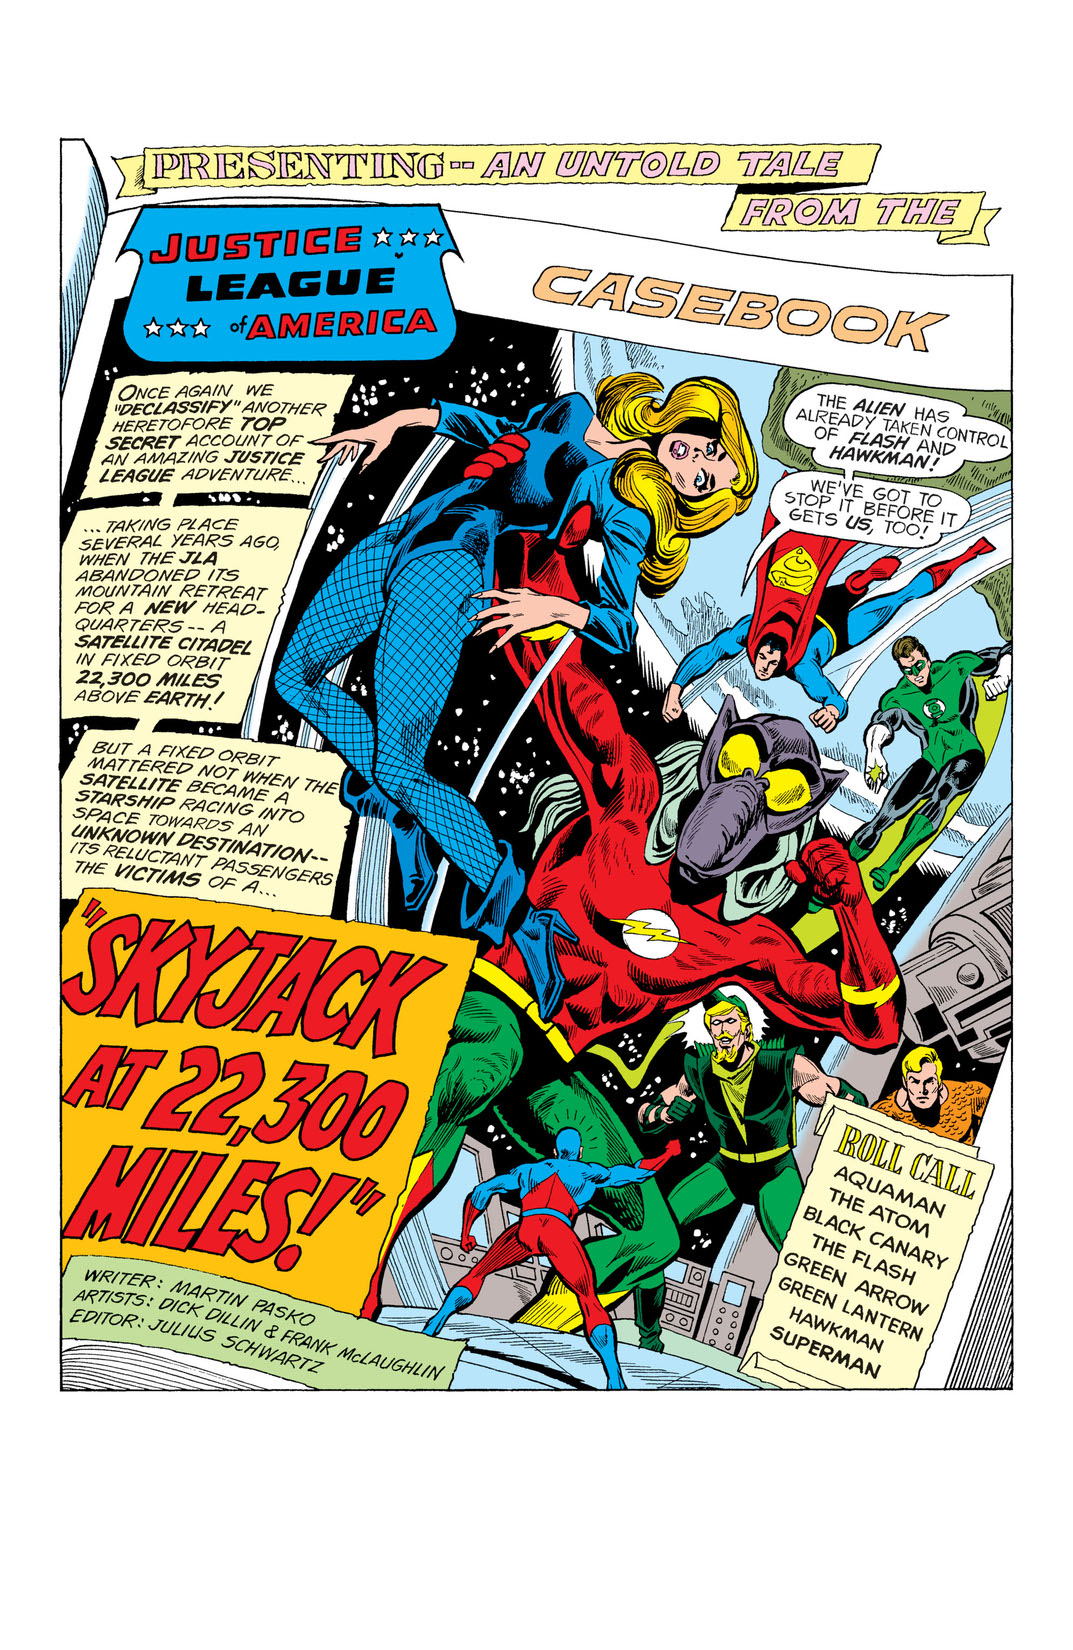 Read Justice League of America (1960-) #130 on DC Universe